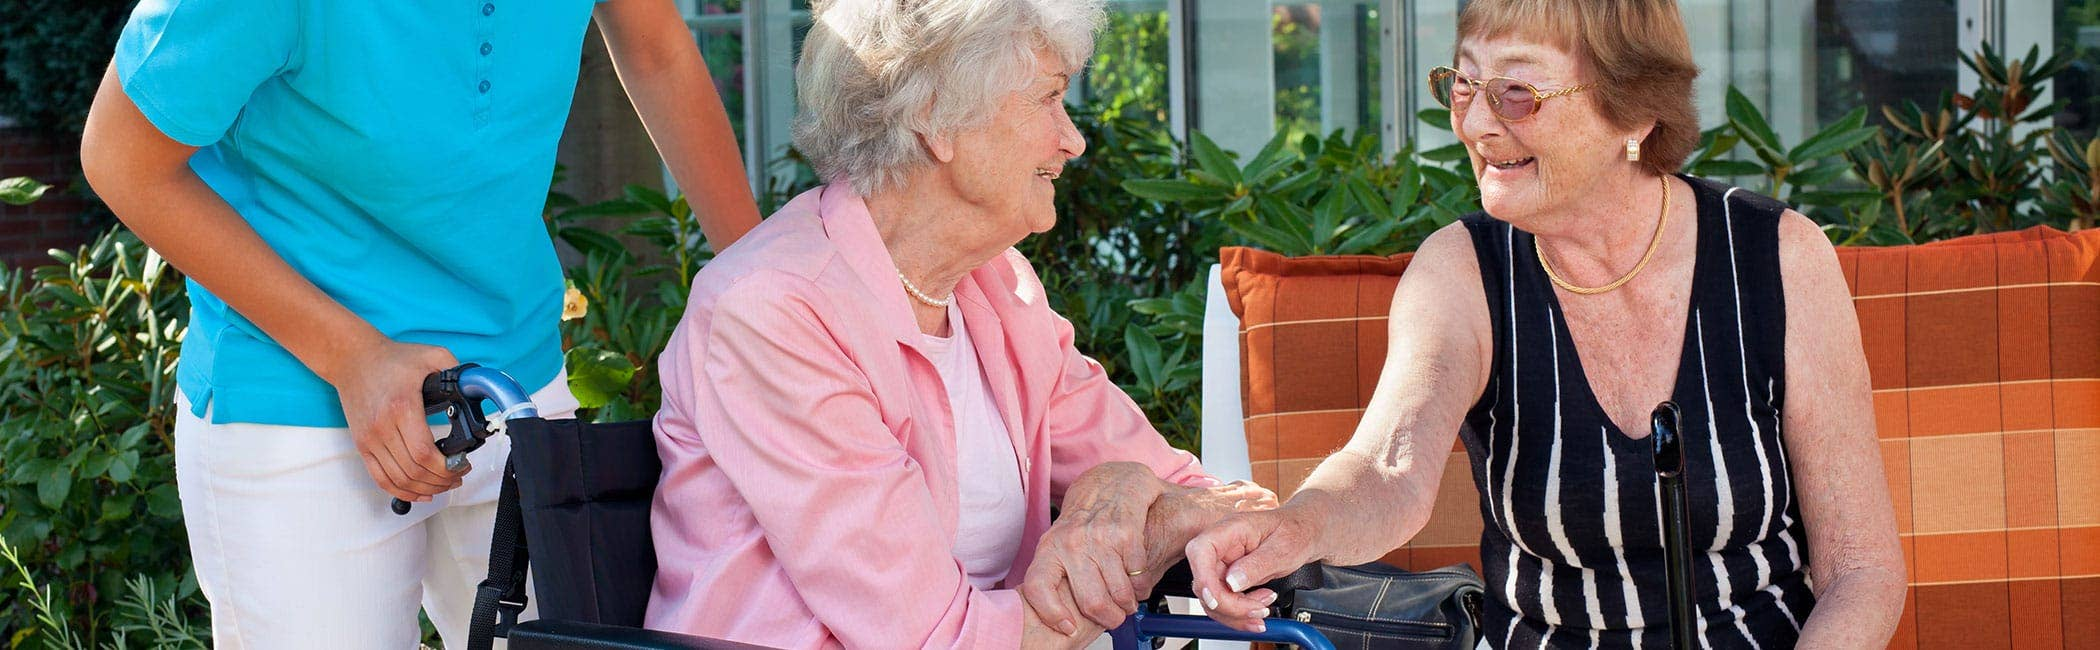 9 Ways to Help Promote Dignity in Your Care Home compressed 1 - Post Local Ads Backpage